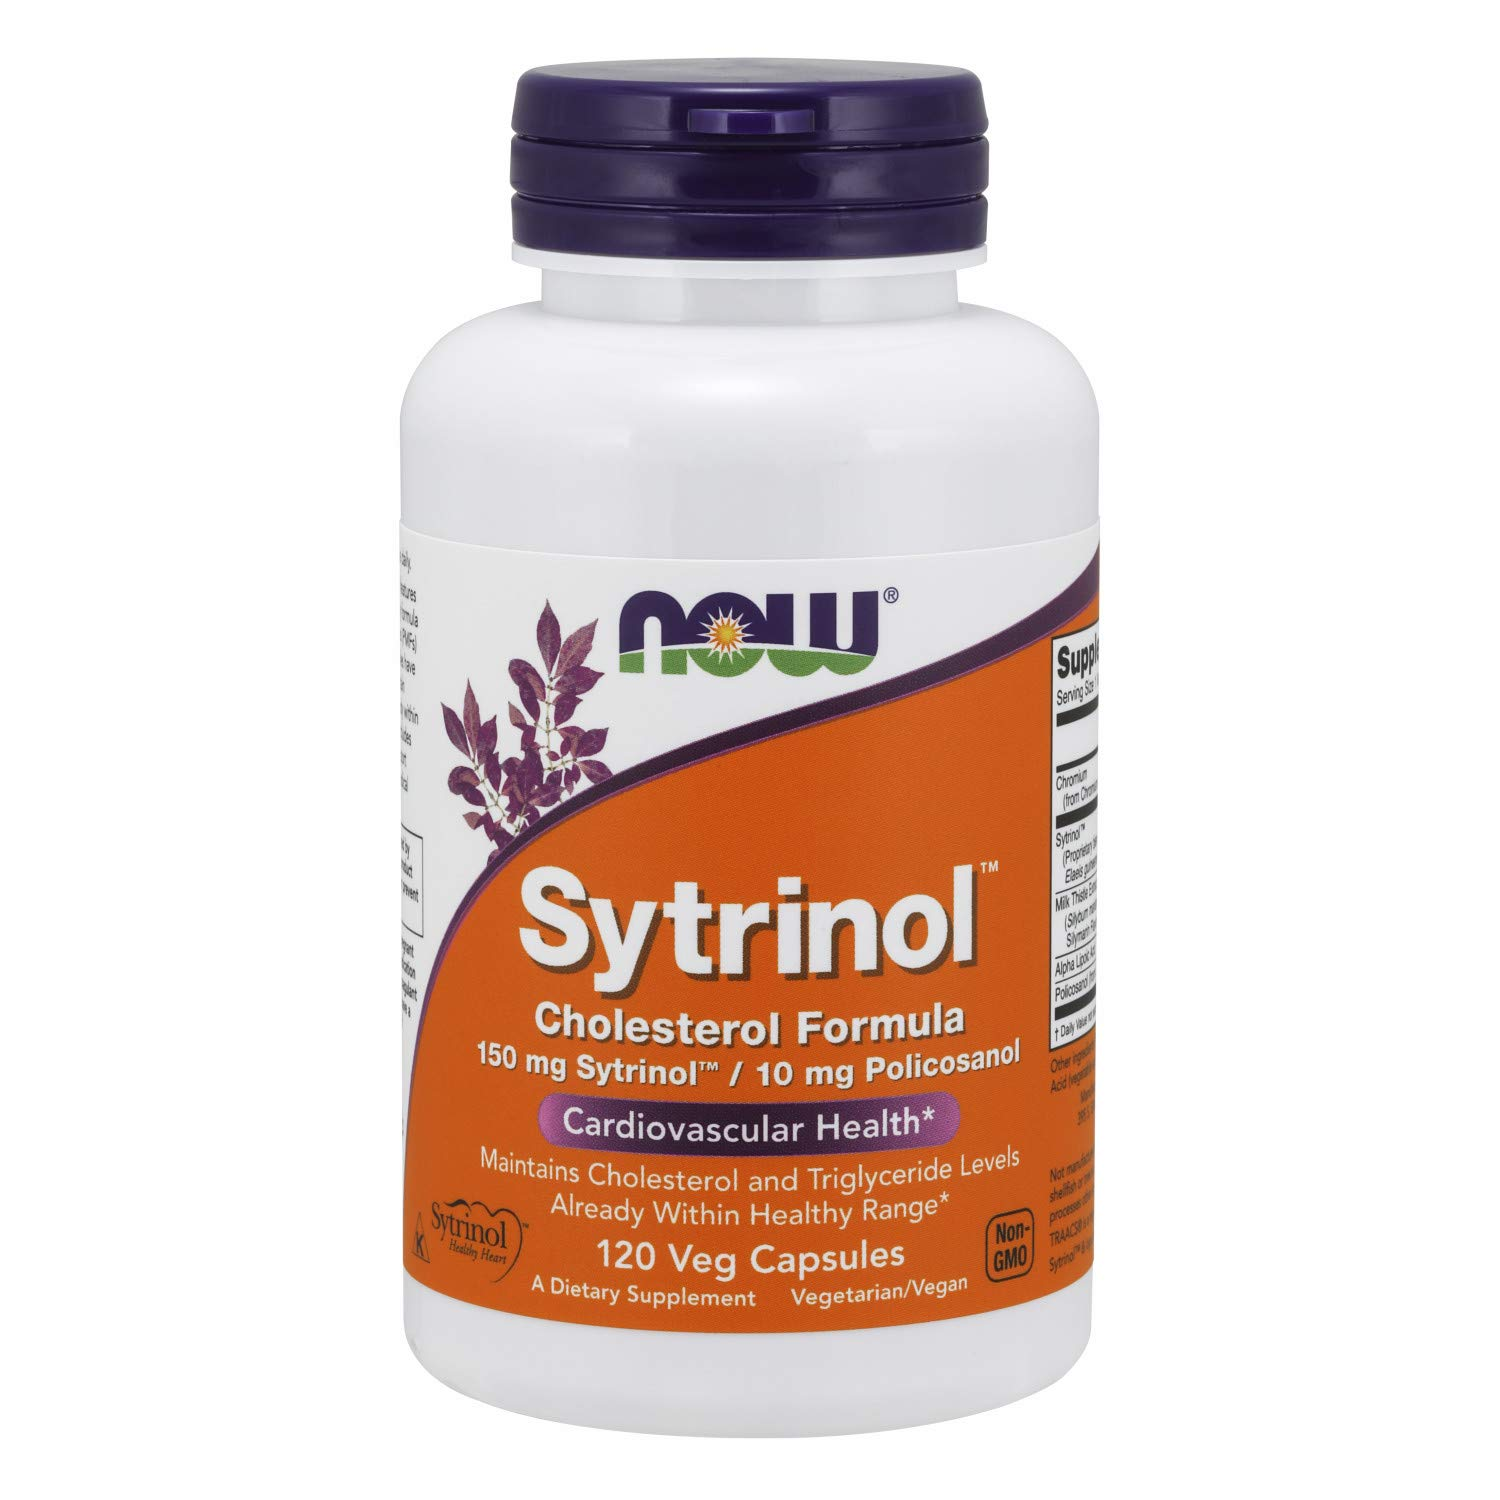 NOW Supplements, Sytrinol, Cholesterol Formula, with 150 mg Sytrinol and 10 mg Policosanol, 120 Veg Capsules